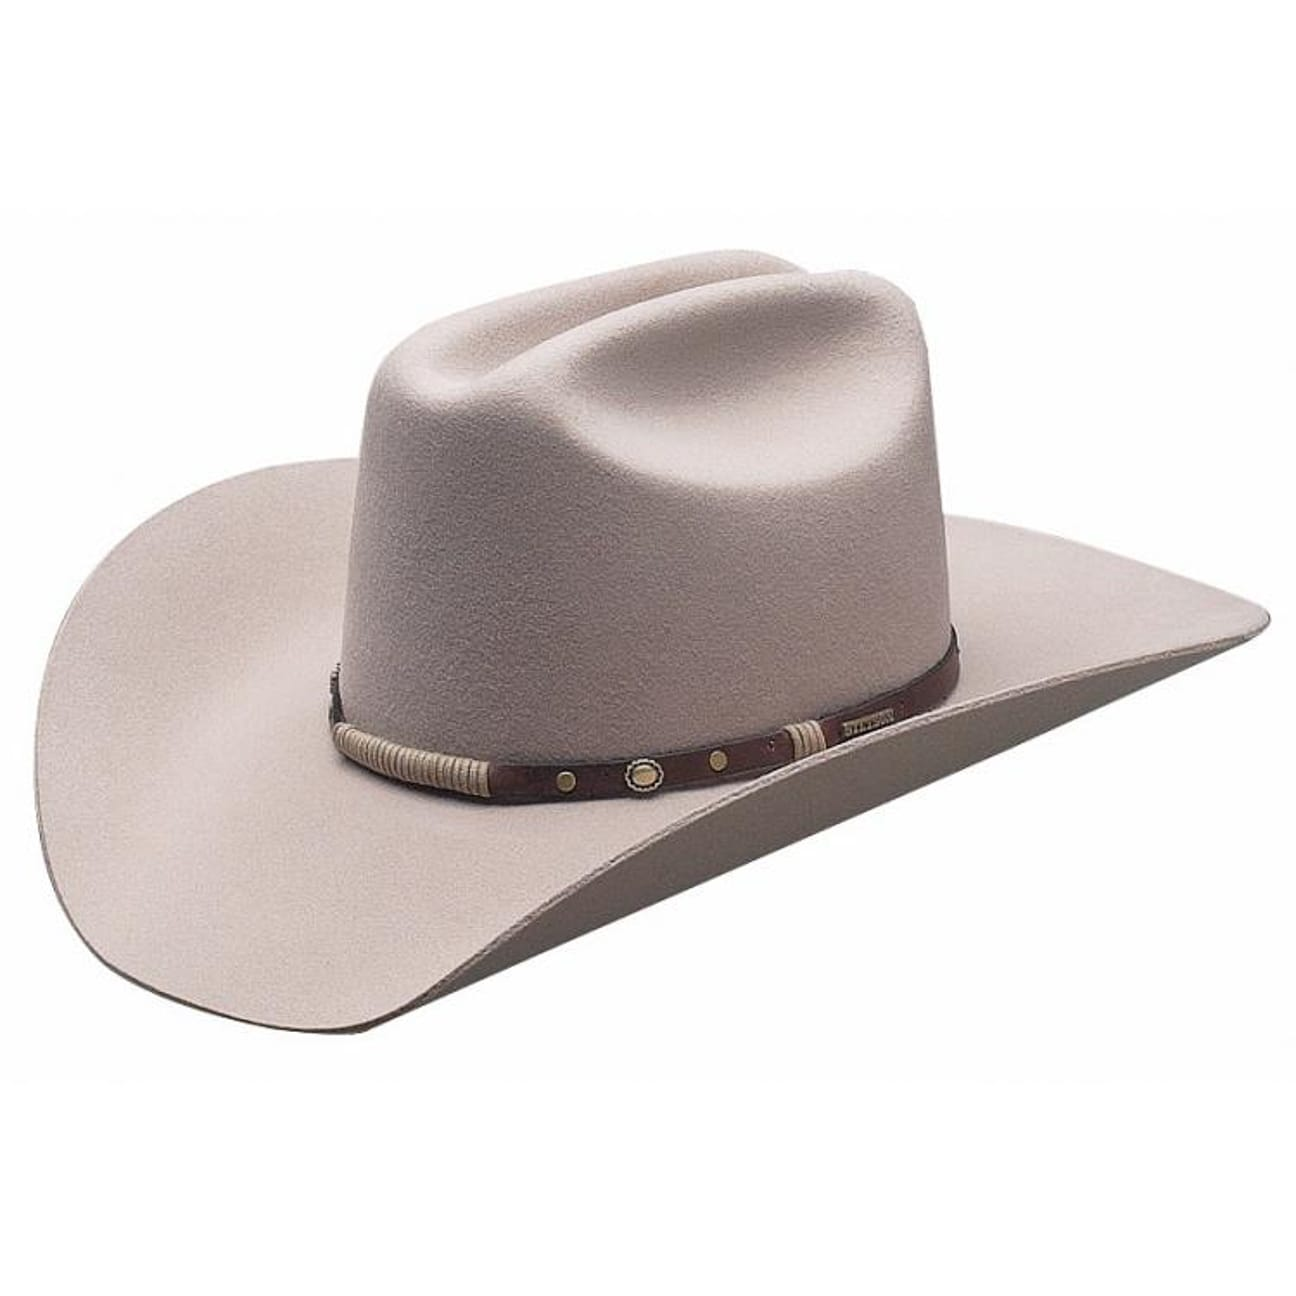 Alamosa Cappello Cowboy by Stetson - beige 1 ... 5575aee0068